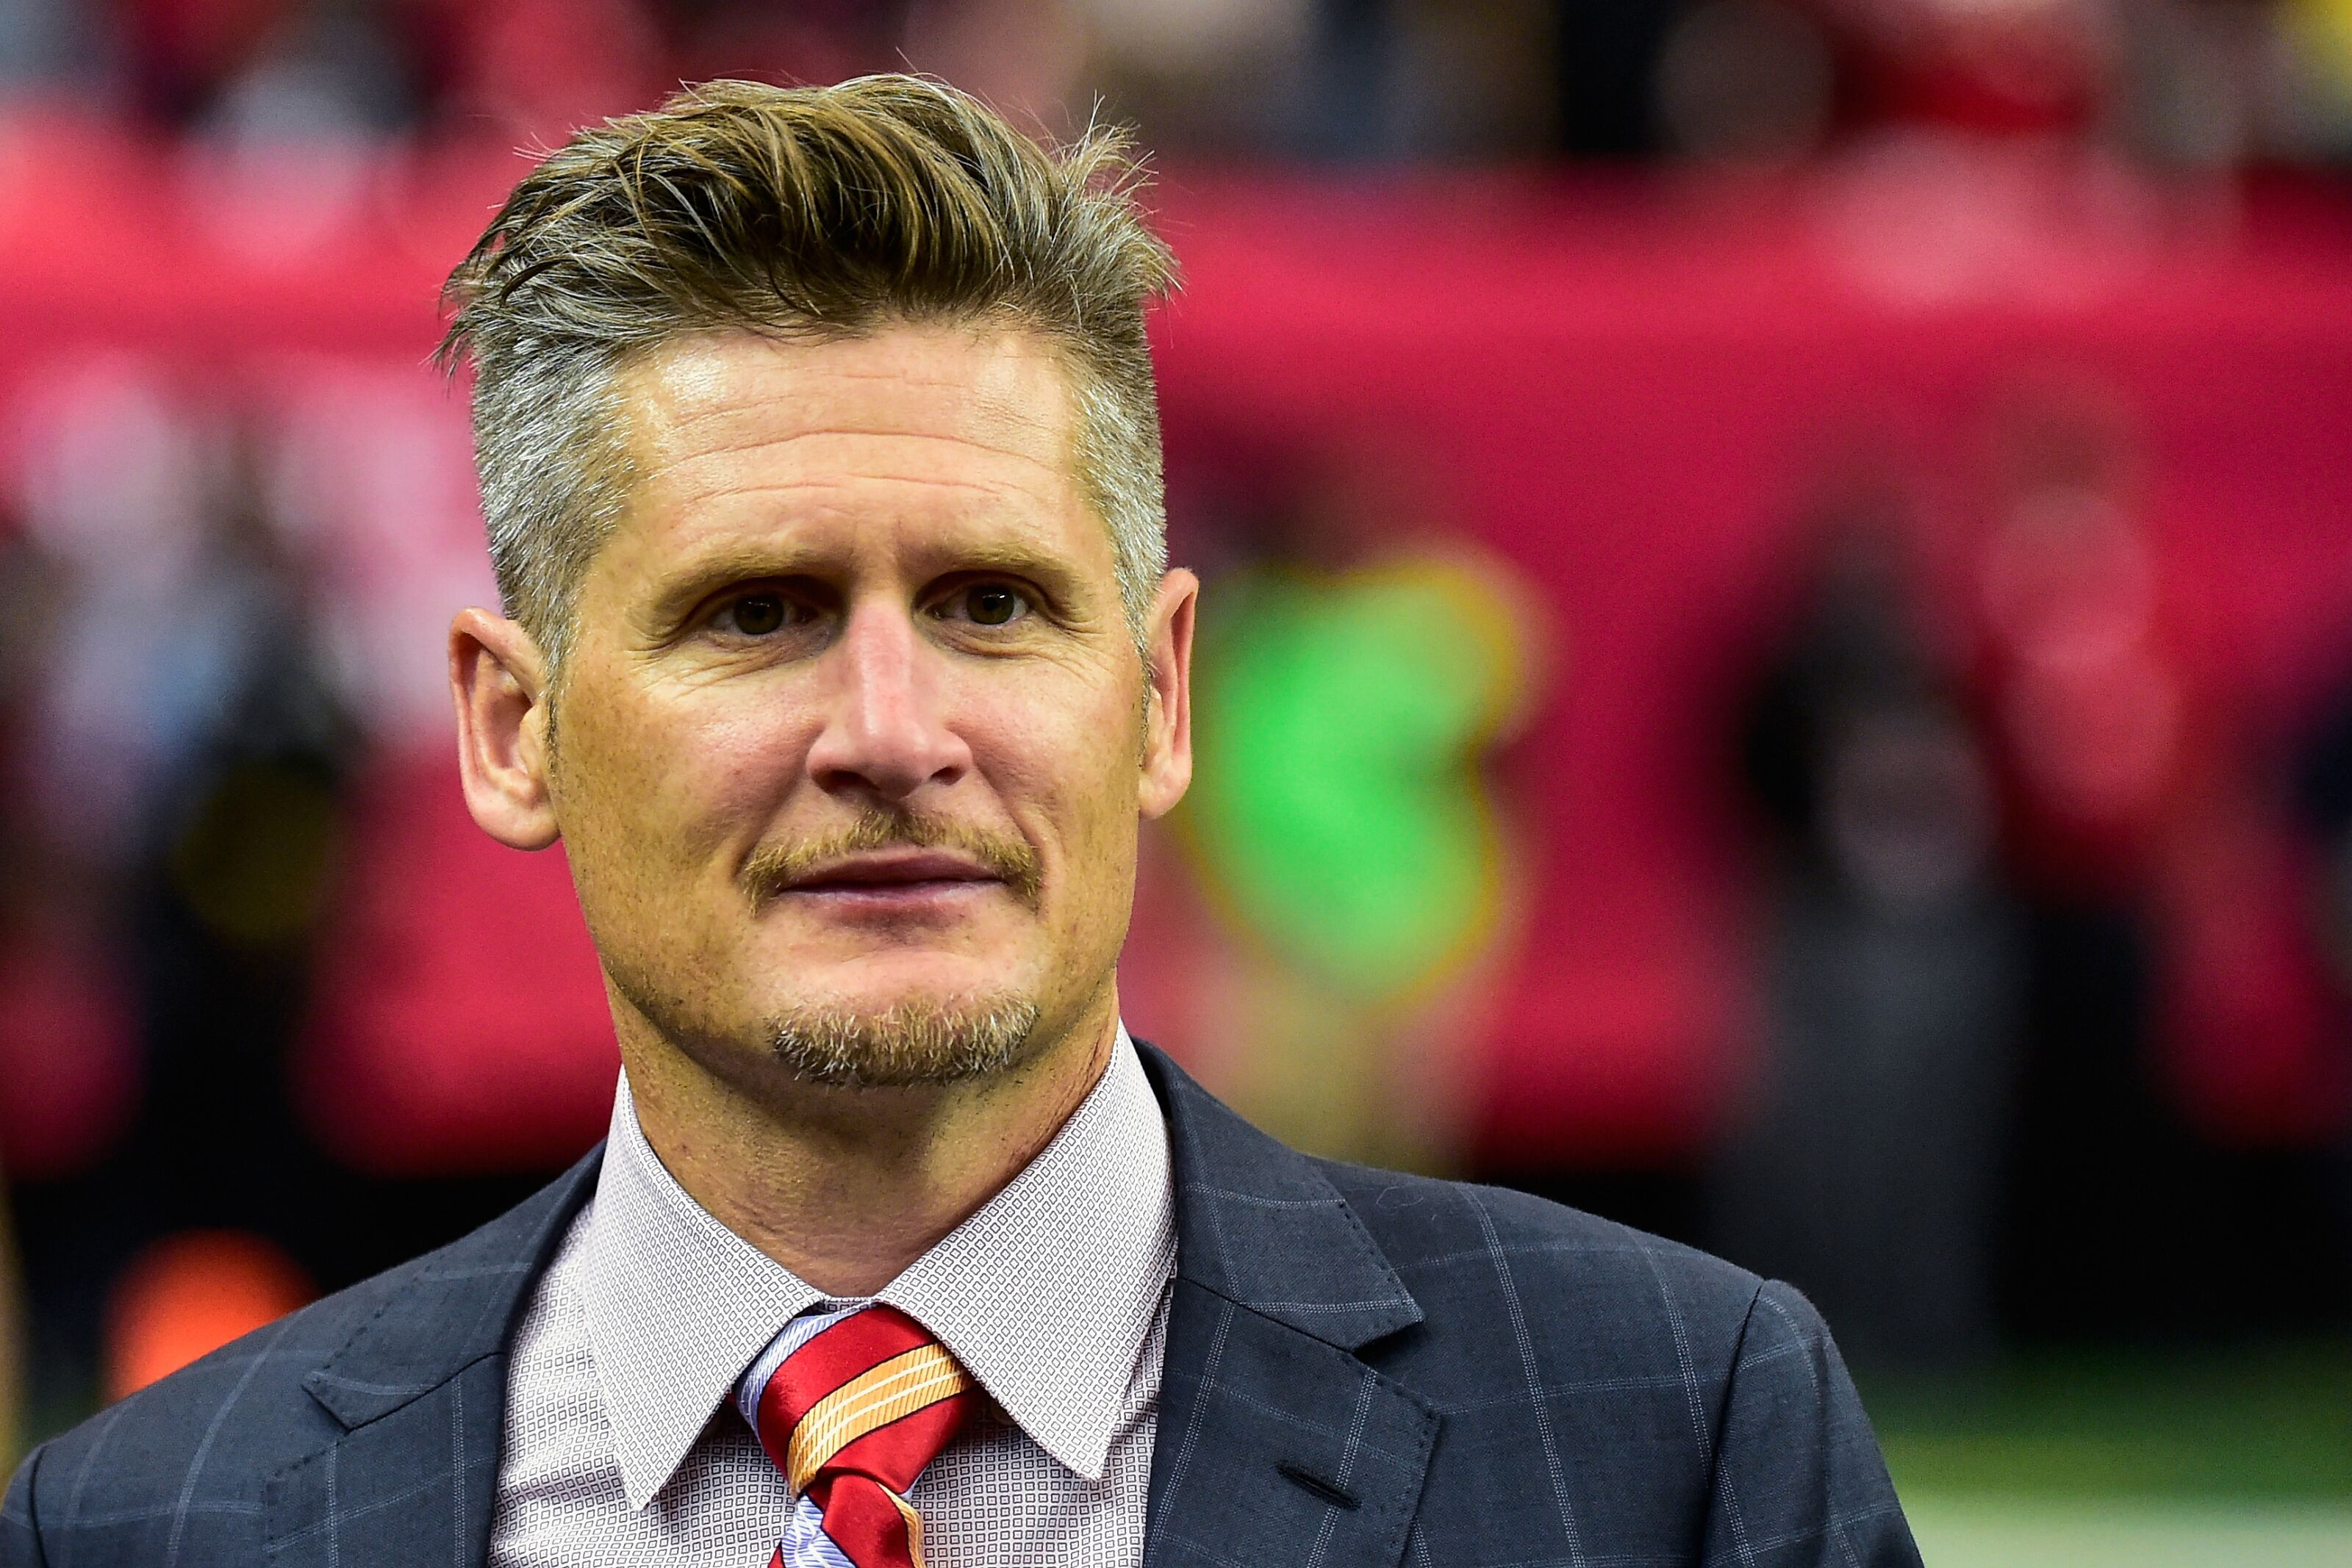 Blame Thomas Dimitroff's ego if Atlanta Falcons fail in 2019